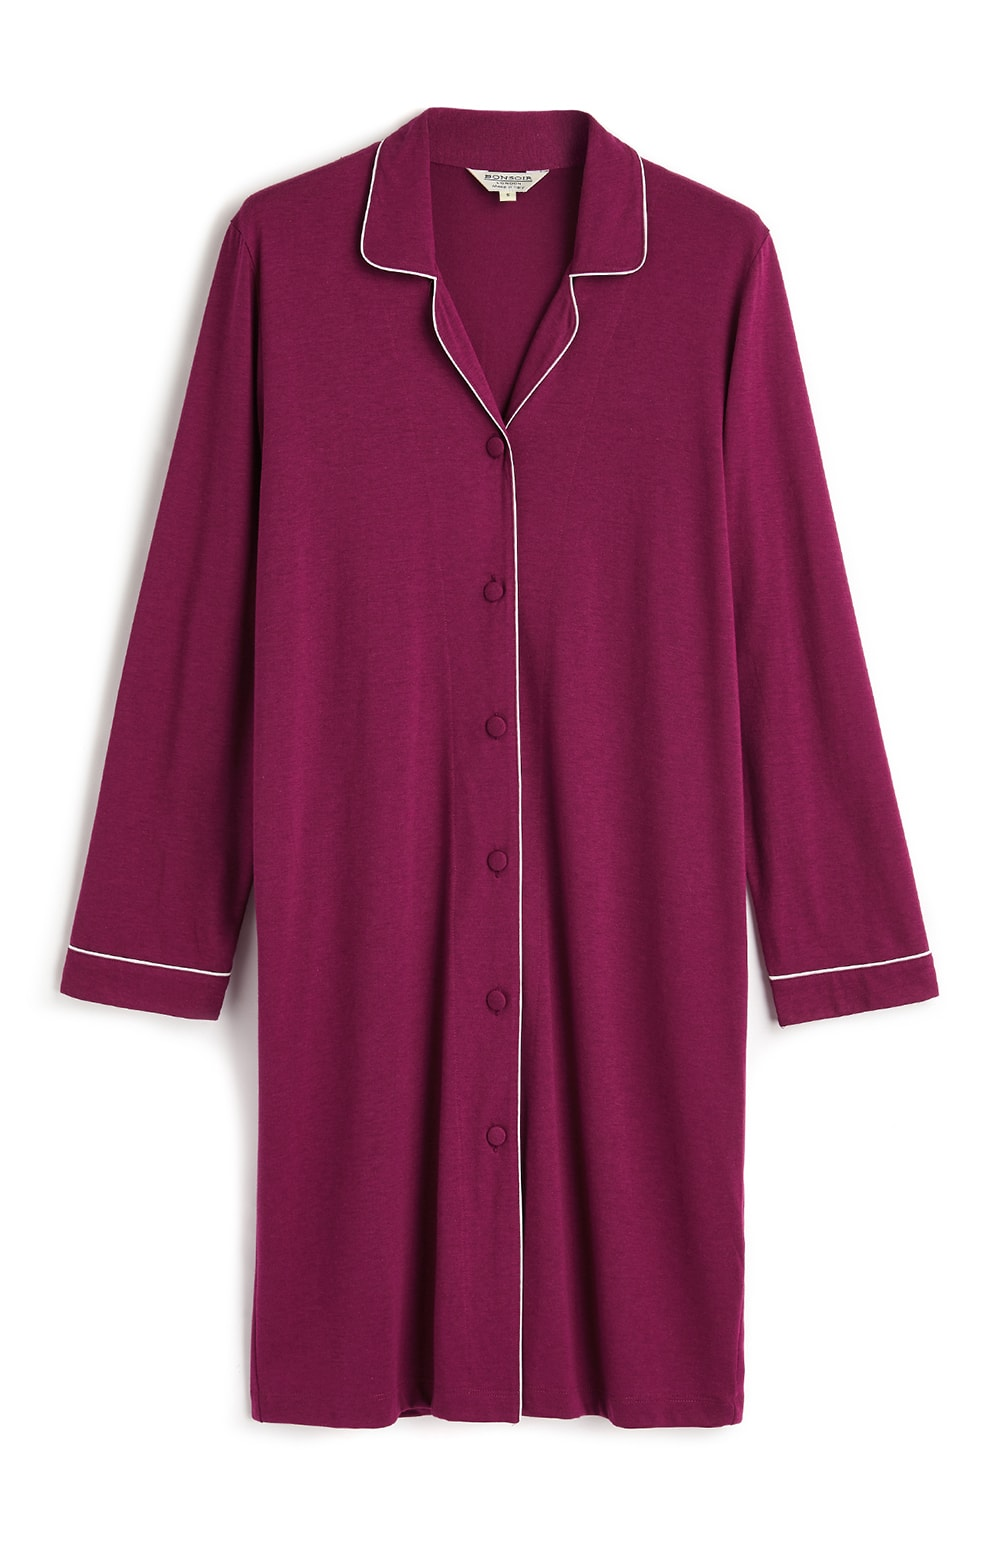 JERSEY NIGHTSHIRT - BERRY